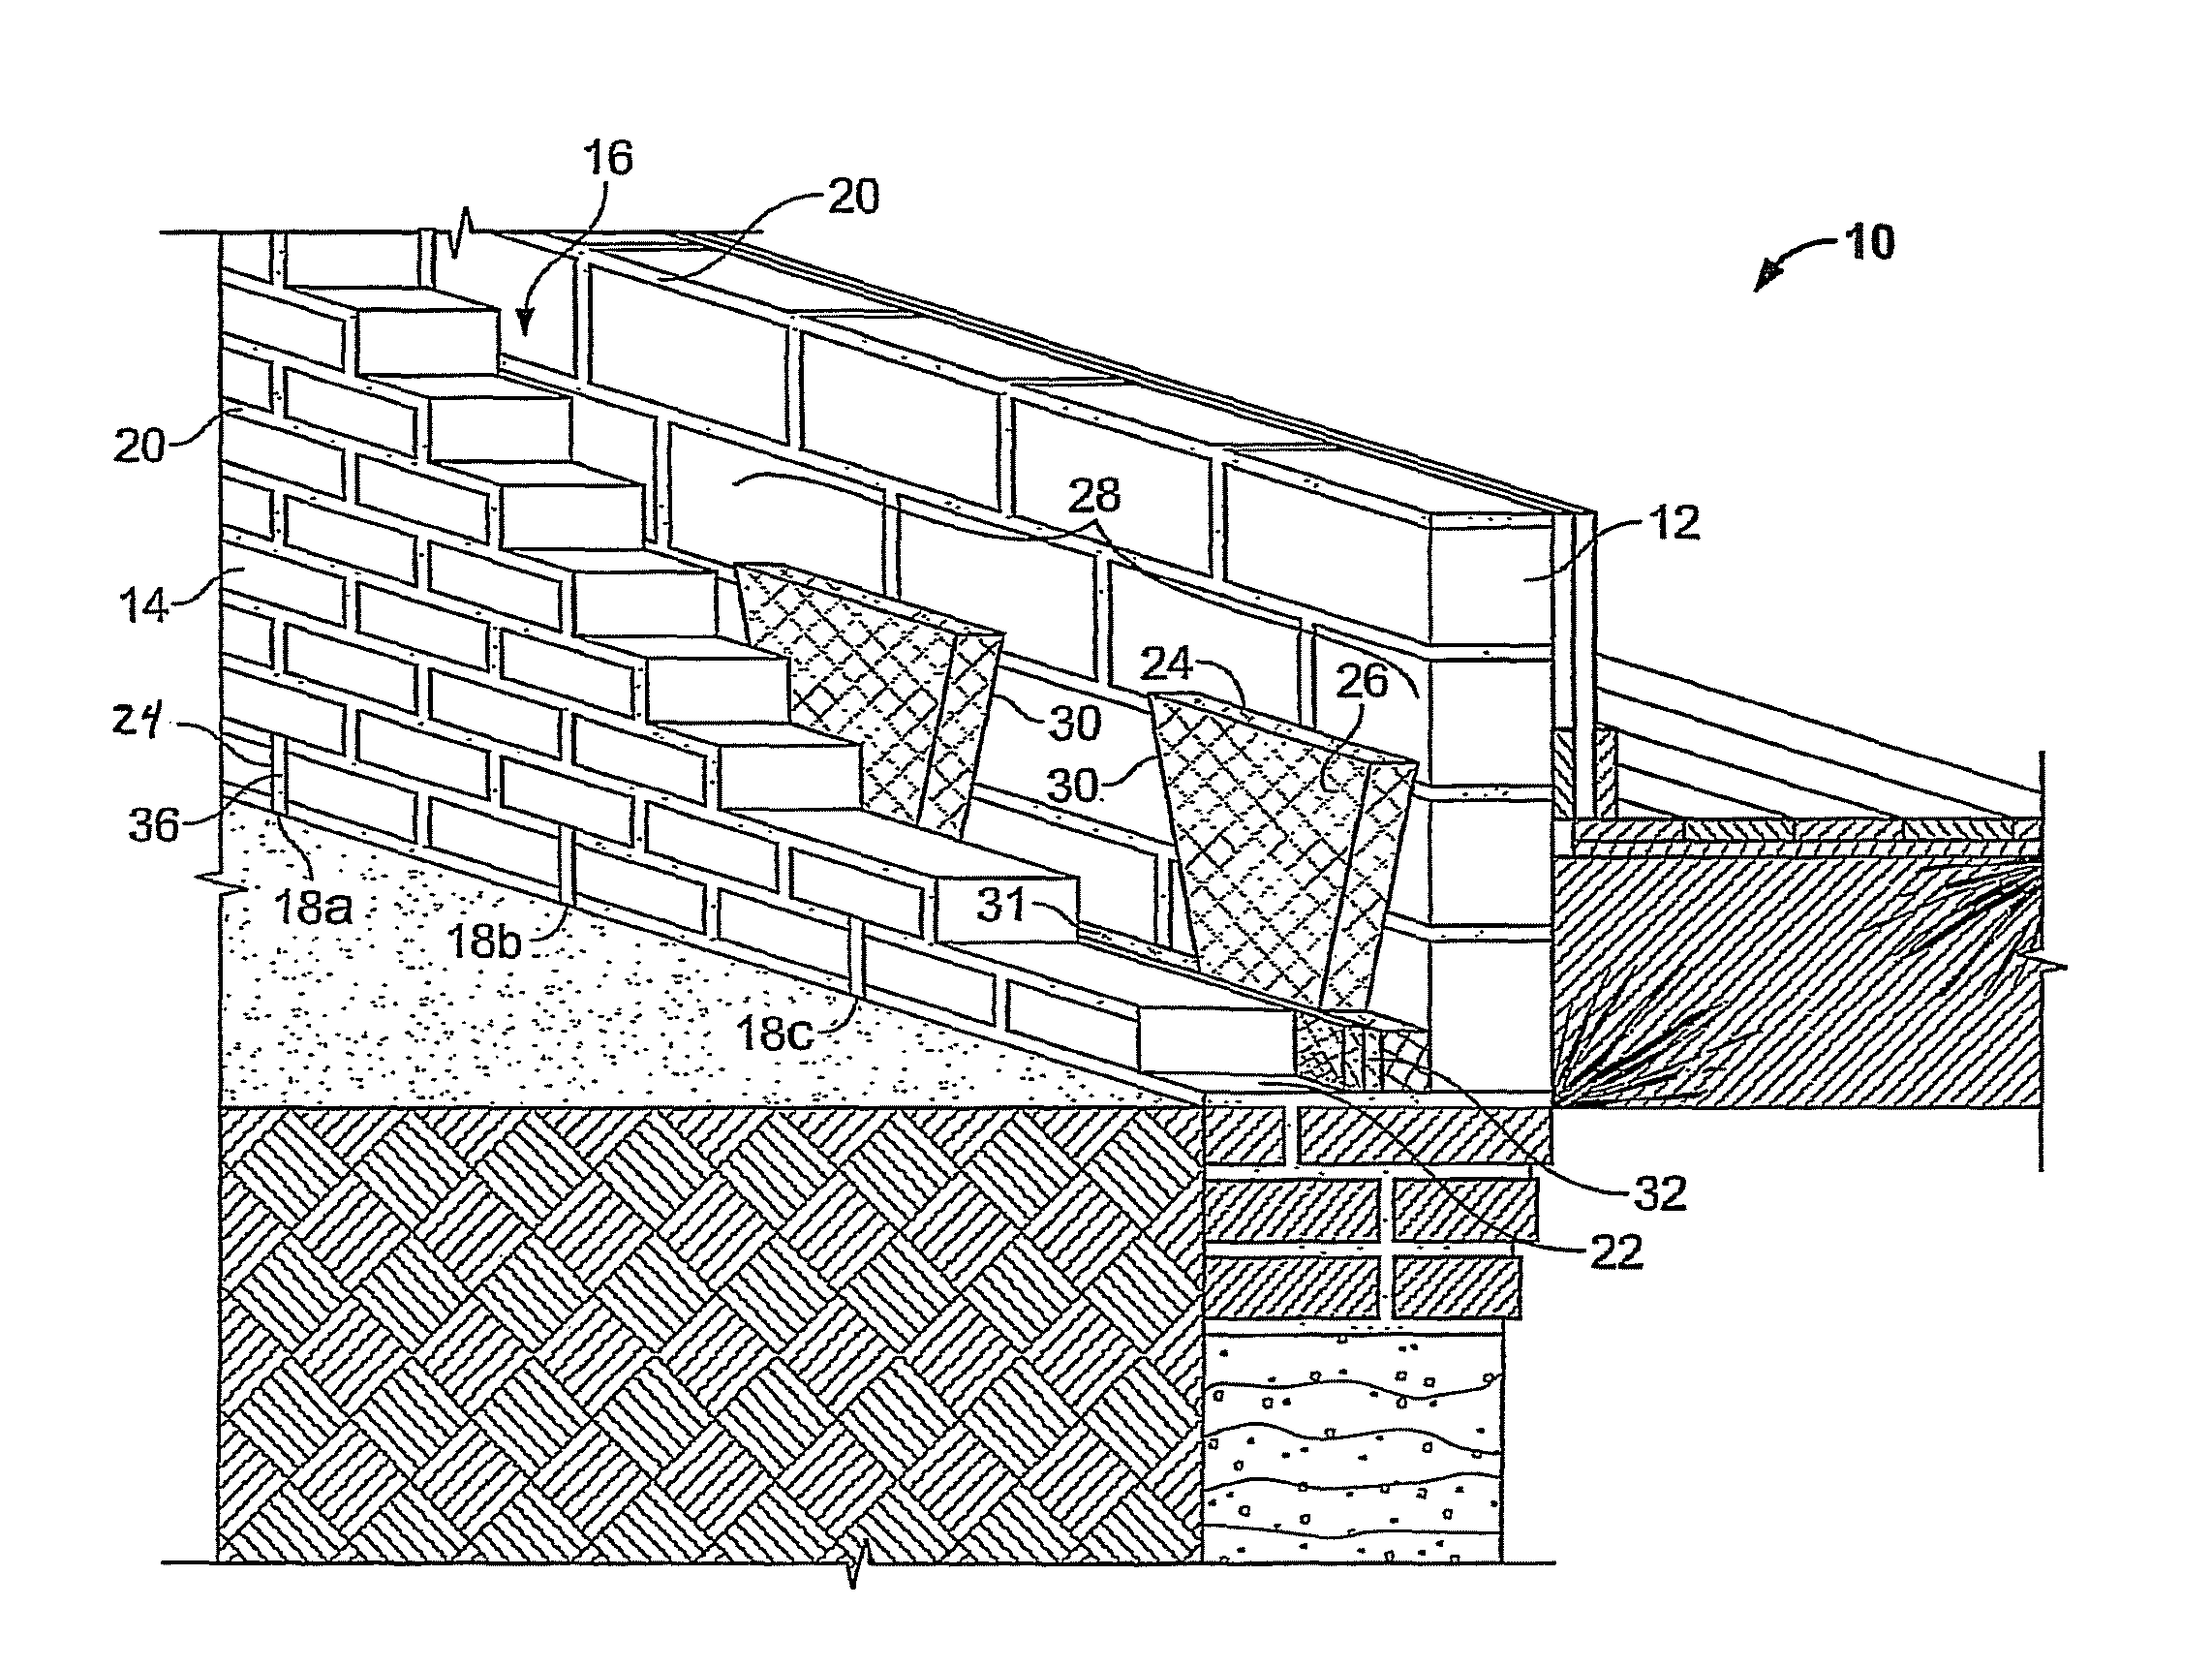 Cavity Wall Construction : Patent us cavity wall construction with insect